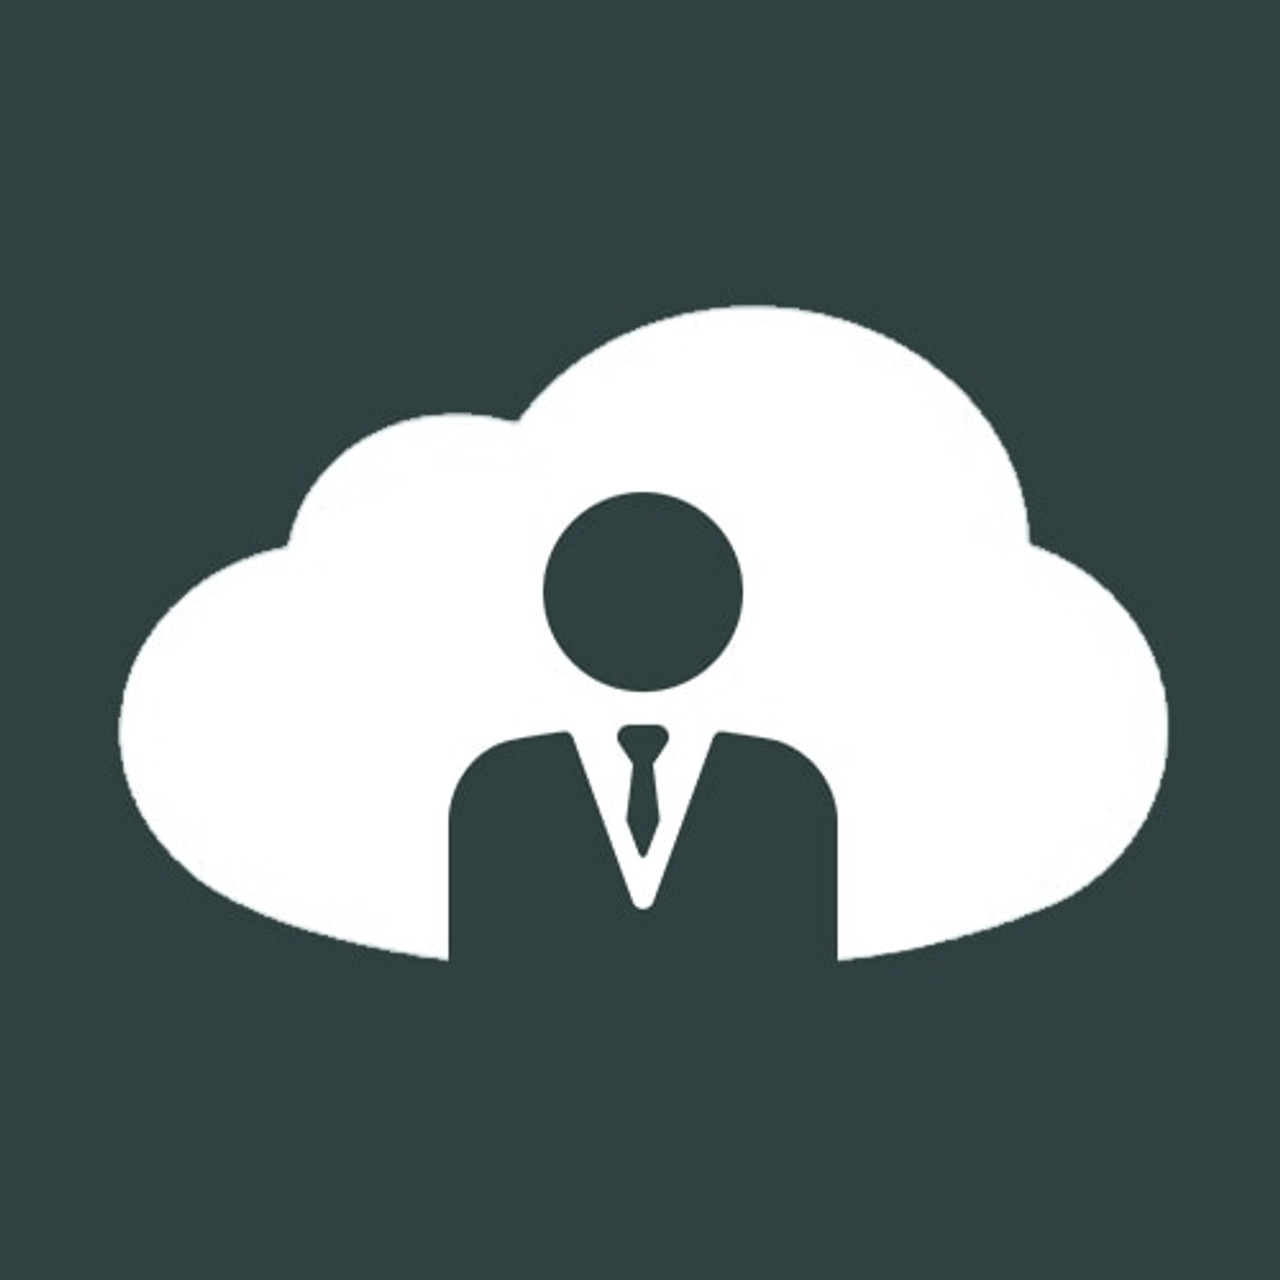 FortiGate-200E - FortiCloud Management, Analysis and 1 Year Log Retention -  36 months